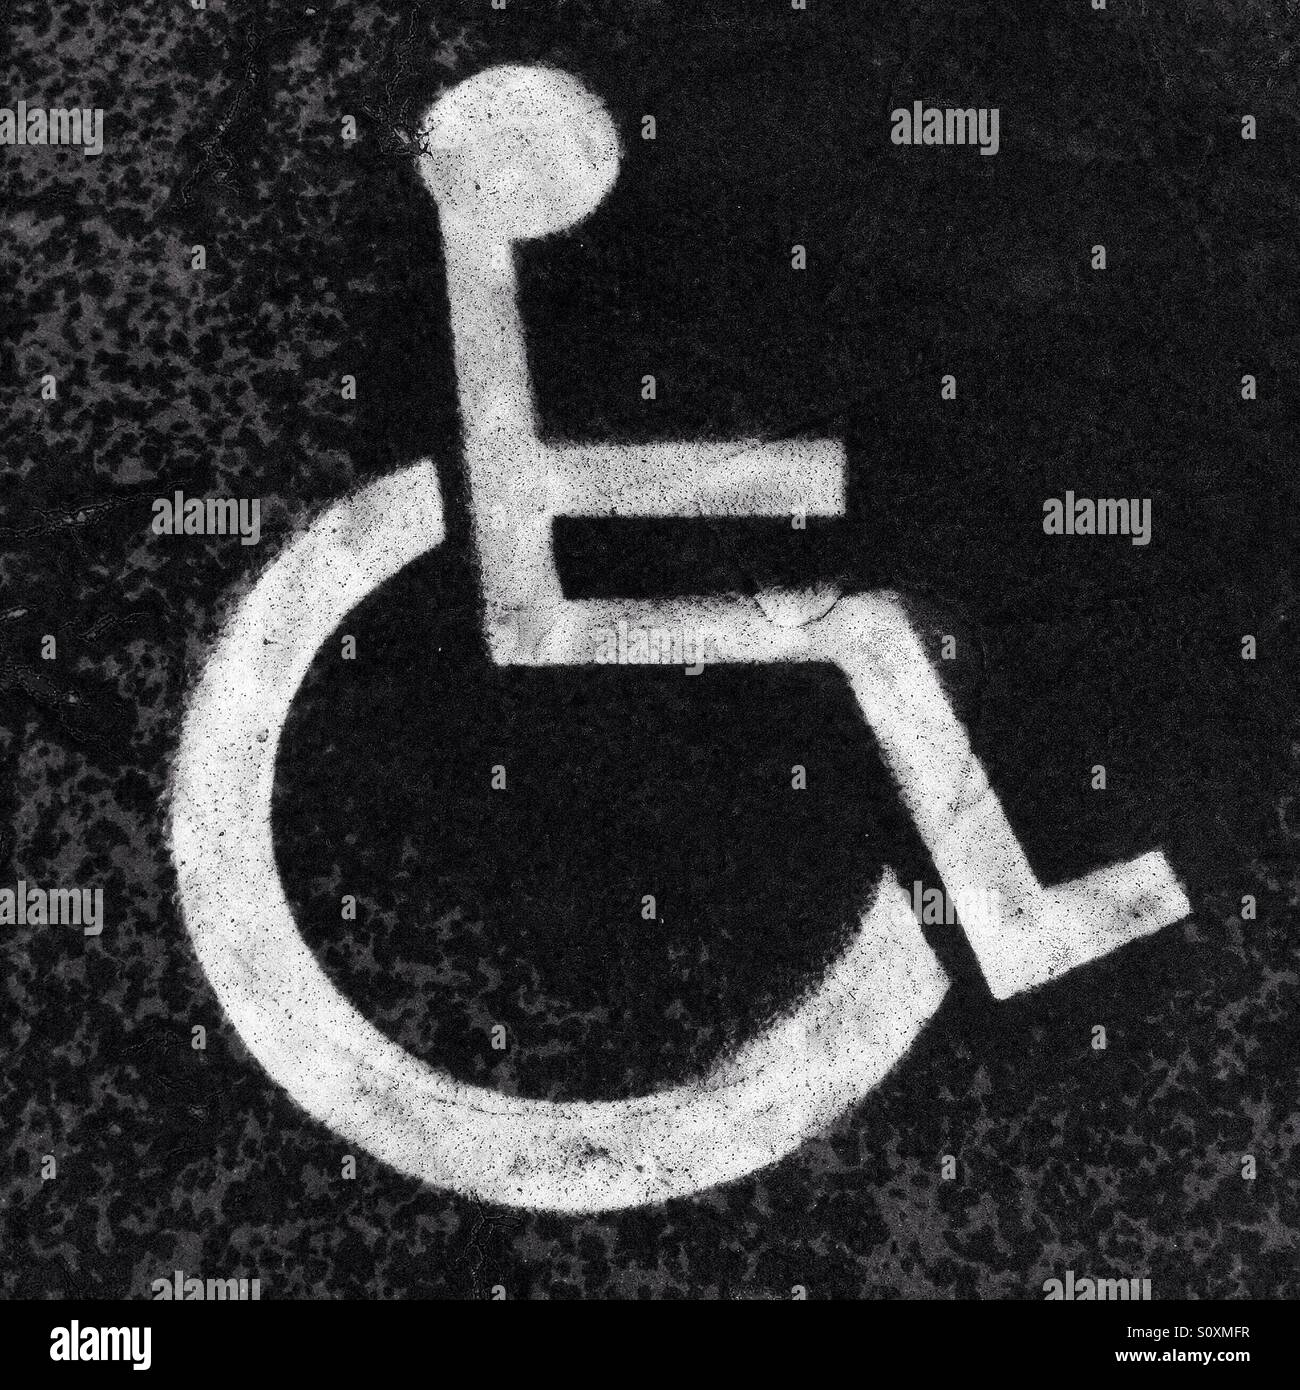 Handicapped sign painted on the road in black and white colors - Stock Image